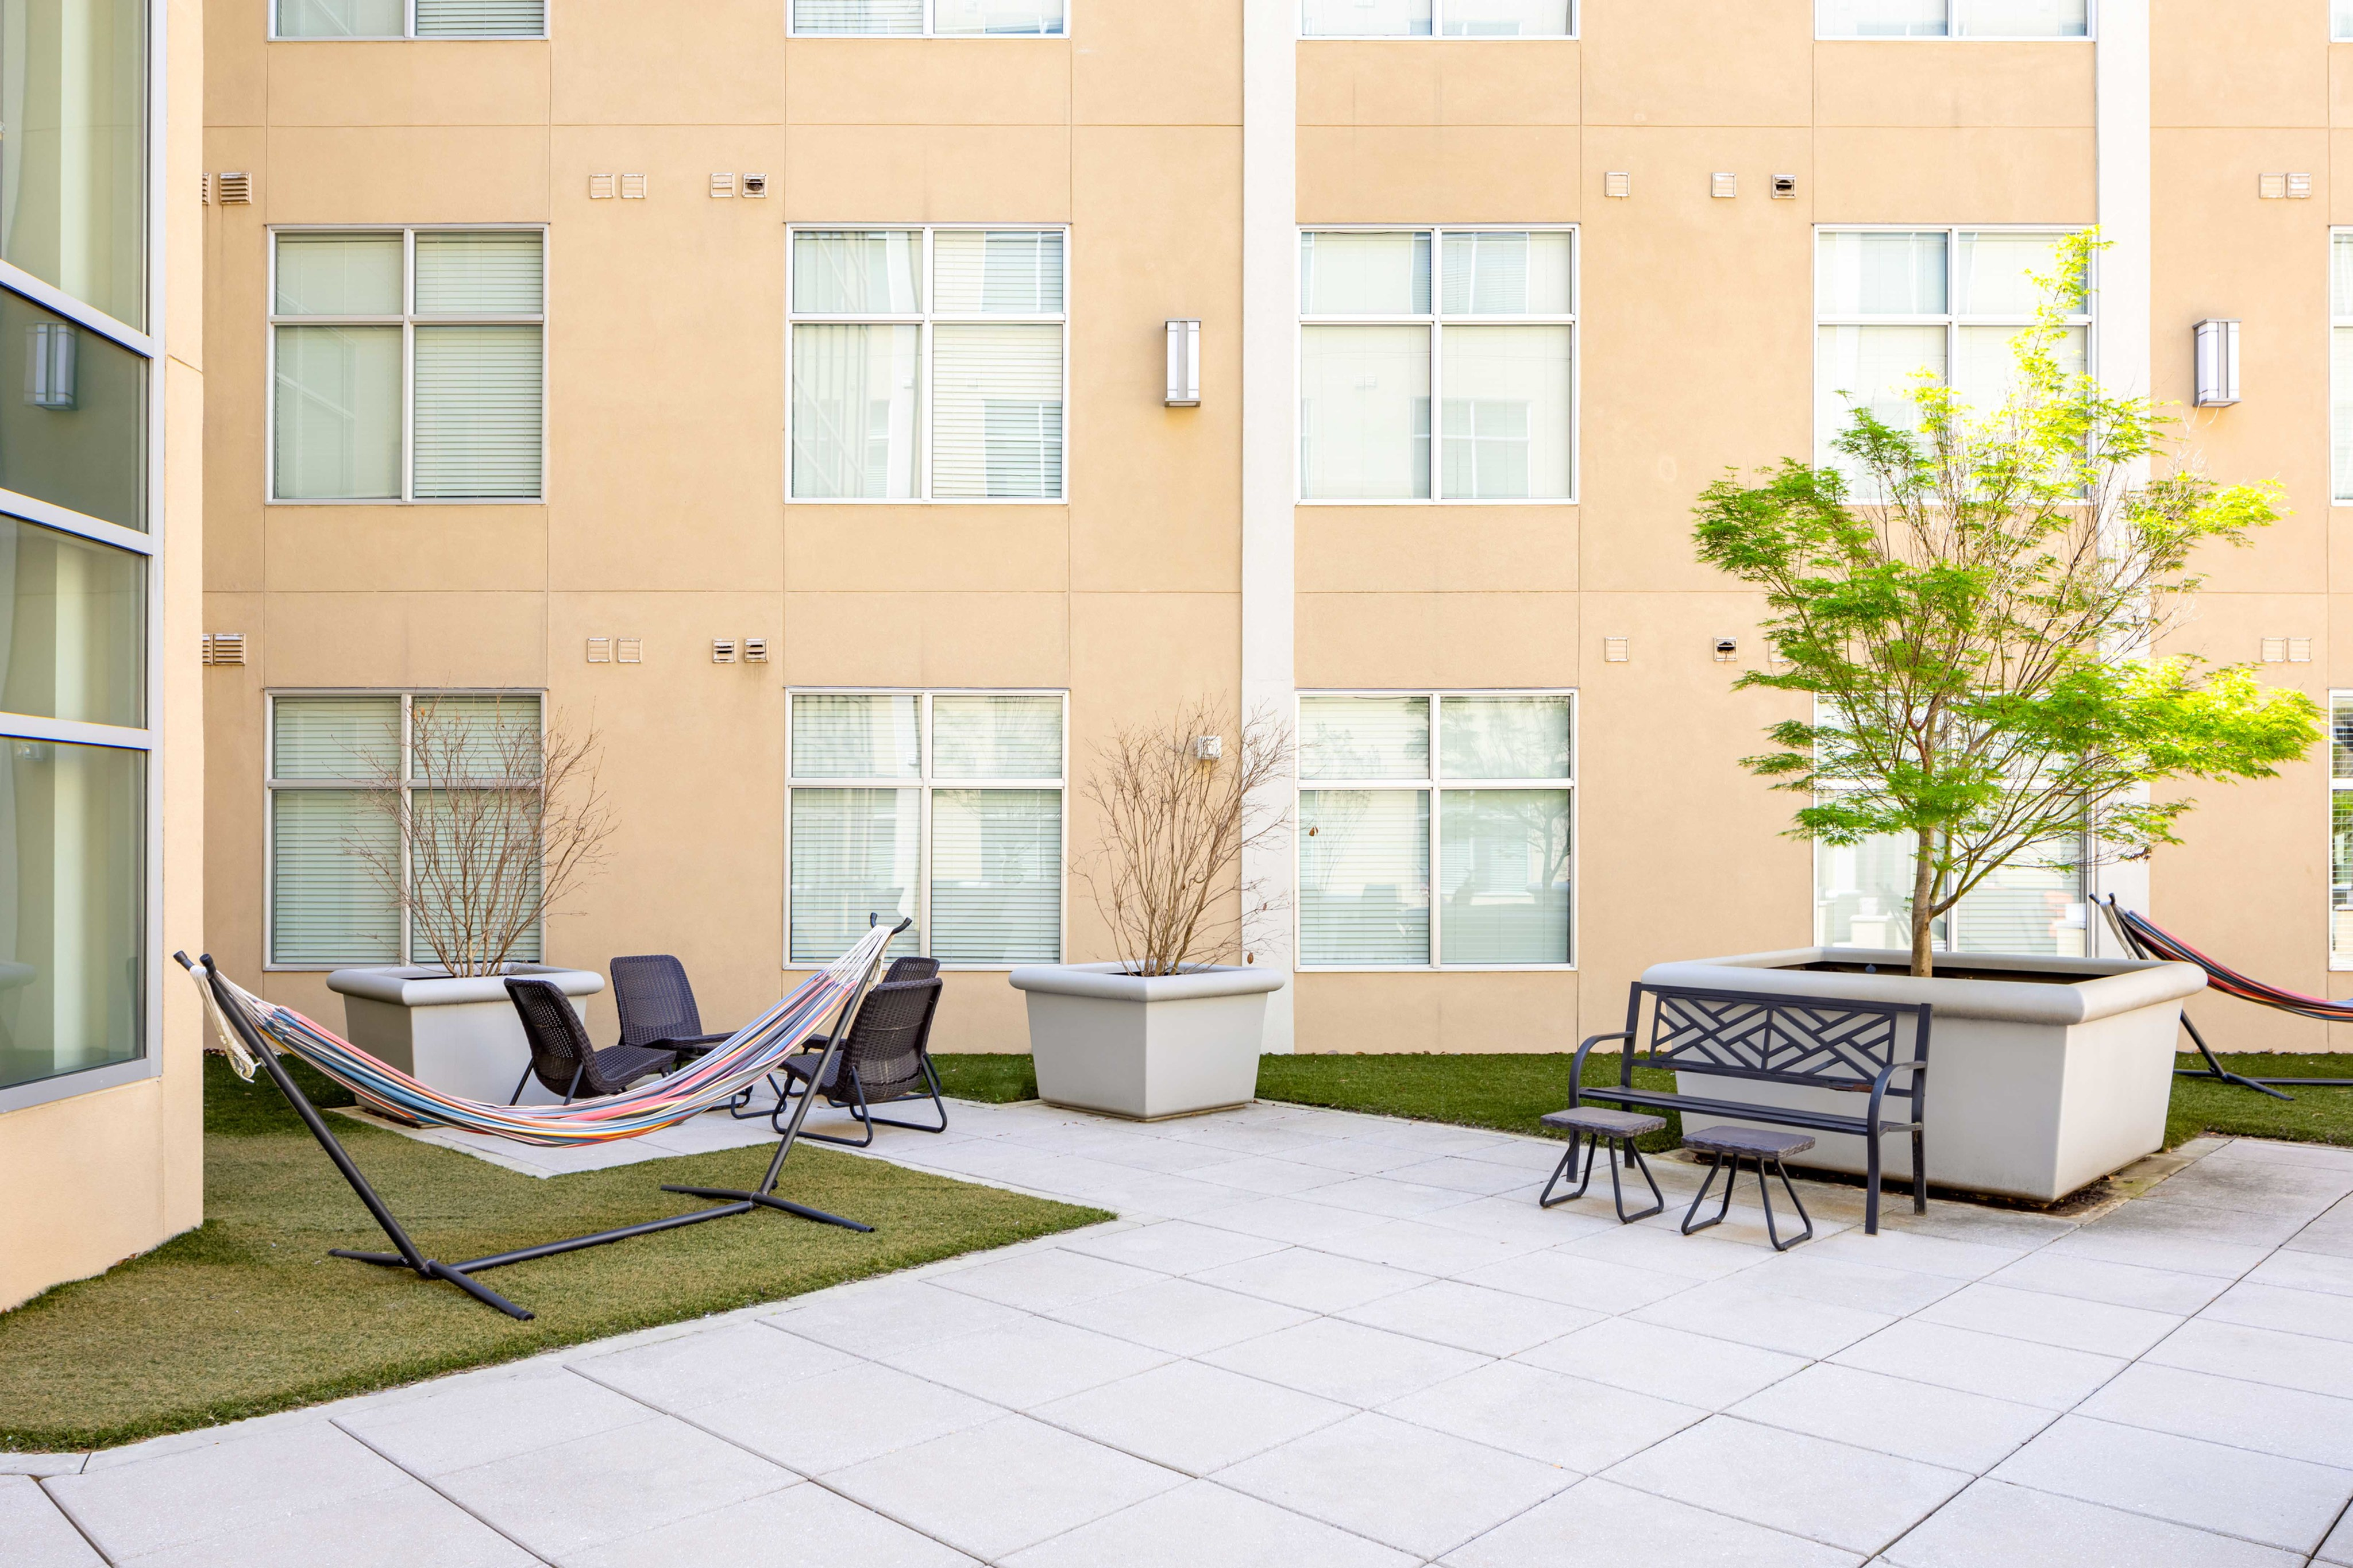 Image of Courtyard With Hammocks for 200 Edgewood